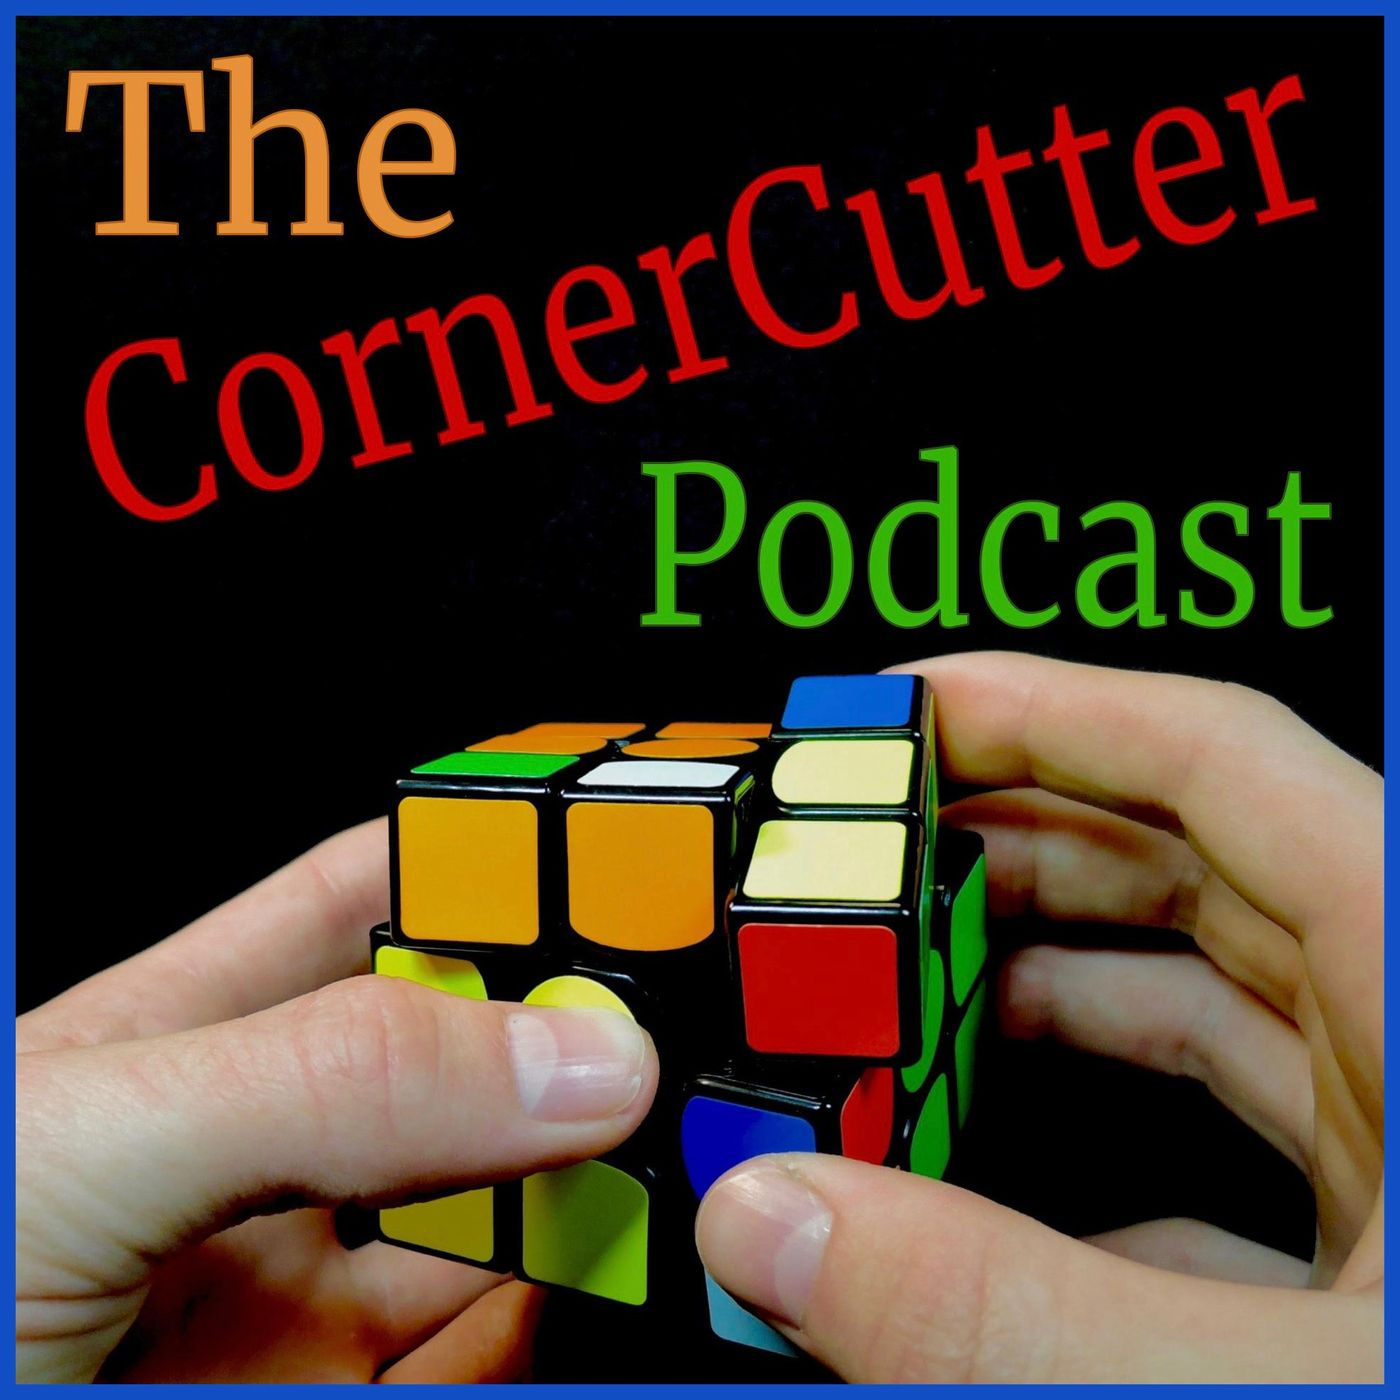 The CornerCutter Podcast A Weekly Cubing Podcast